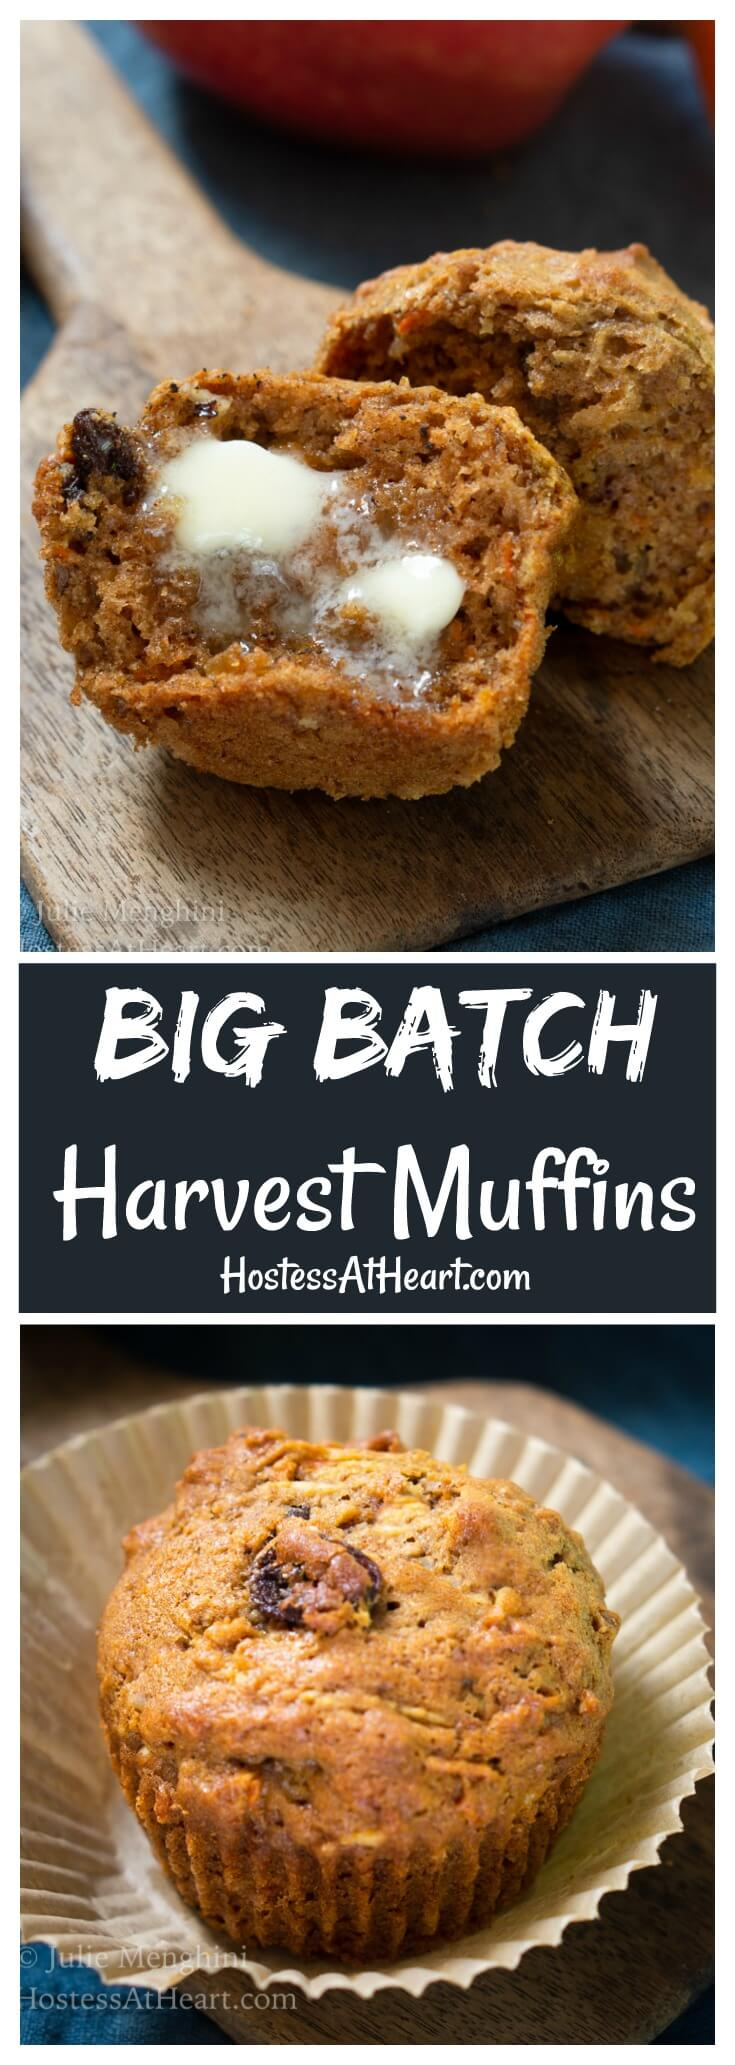 Big Batch Whole Wheat Harvest Muffins are warm, tender and delicious. They'll feed a crowd and freeze well making them a perfect make-ahead anytime muffin. #muffins, #MuffinRecipes, #Bake